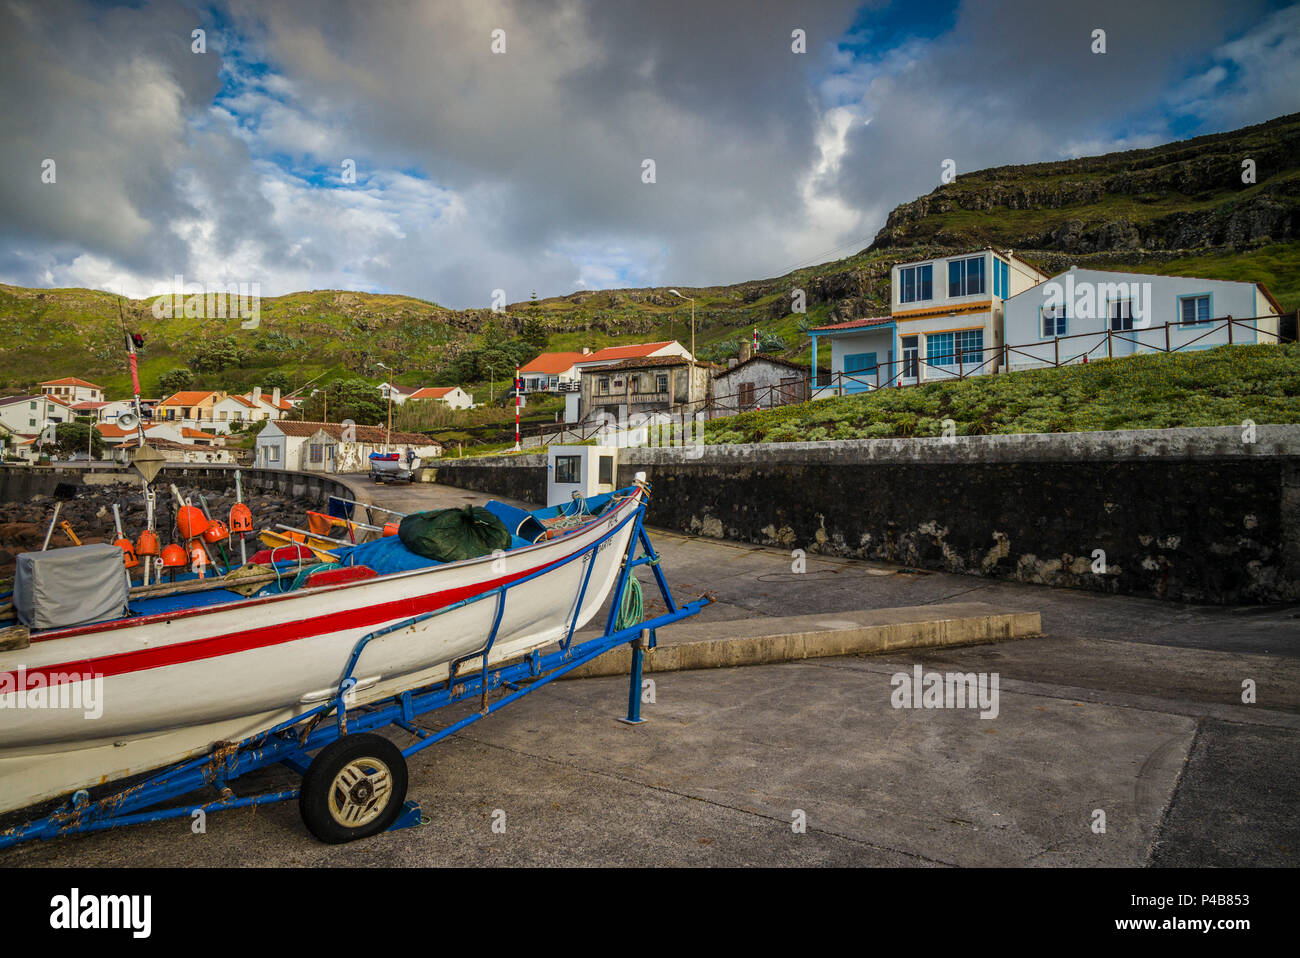 Portugal, Azores, Santa Maria Island, Anjos, place where Christopher Columbus made landfall after discovering the New World, boat harbor - Stock Image